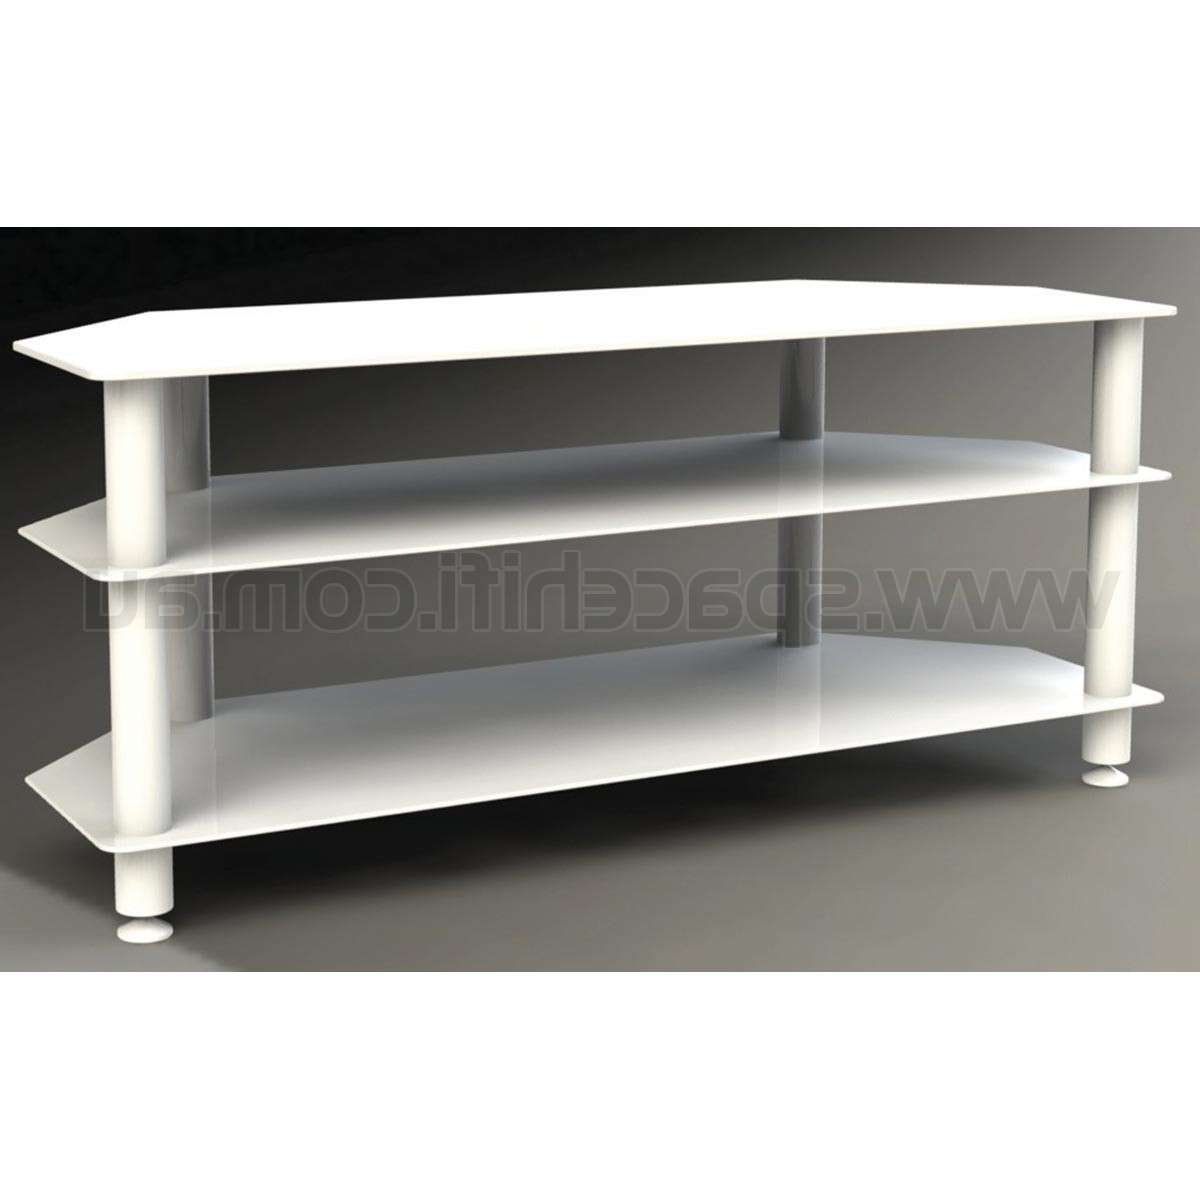 Tauris Ace 1200Mm 3 Shelf White Glass Tv Unit Stand | Space Hi Fi With Regard To Glass Tv Cabinets (View 16 of 20)